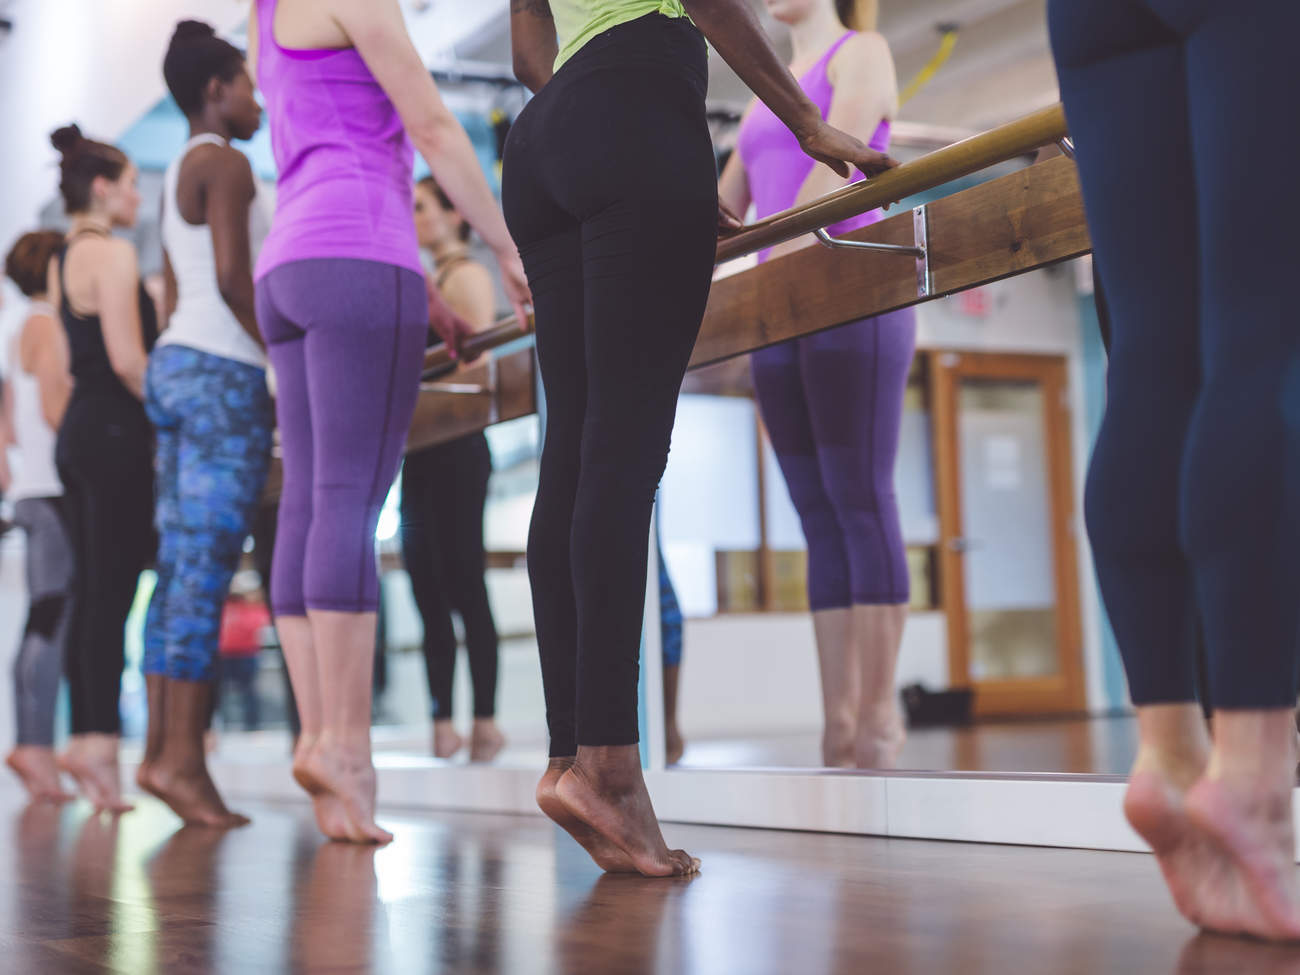 barre fitness class workout pilates exercise group